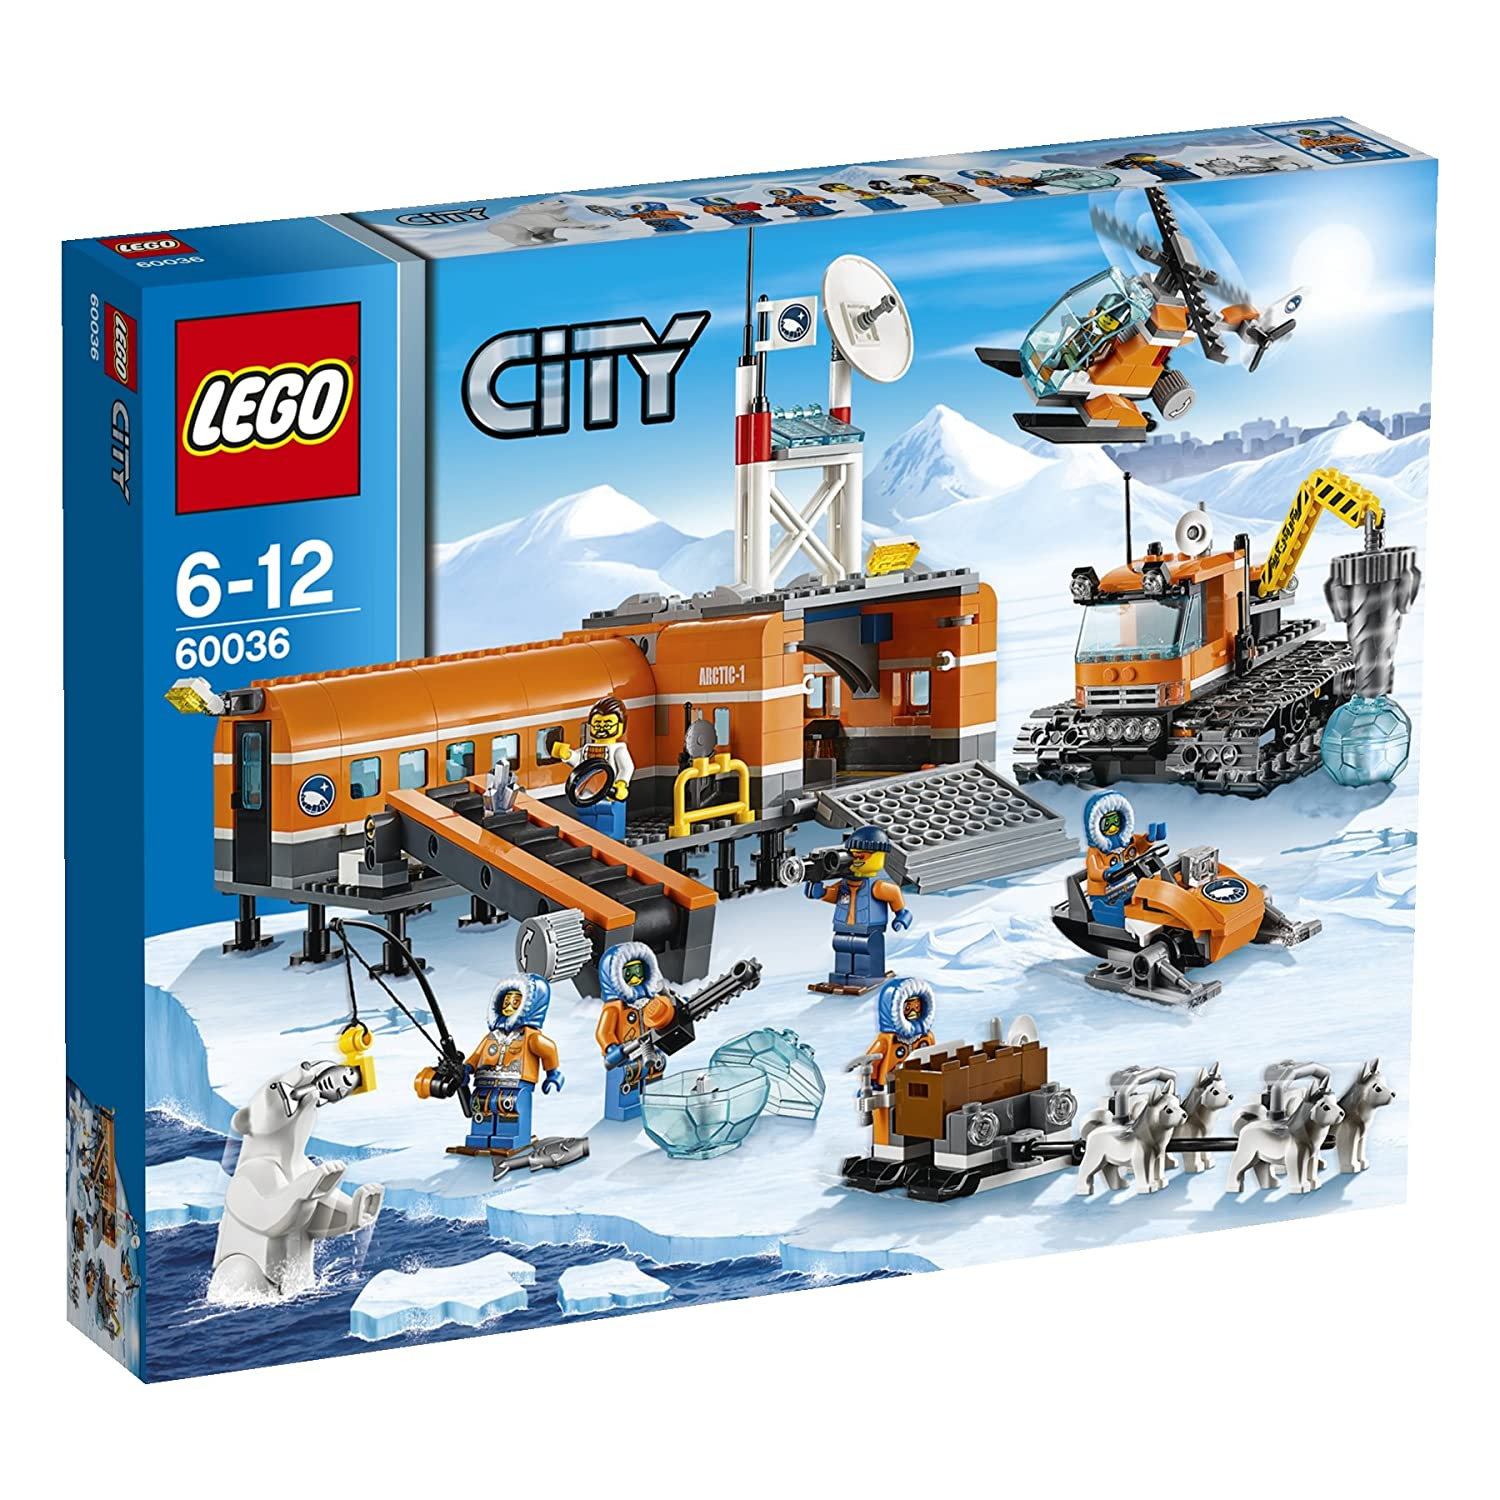 Lego 174 City 174 Arctic Base Camp With Helicopter Ice Driller